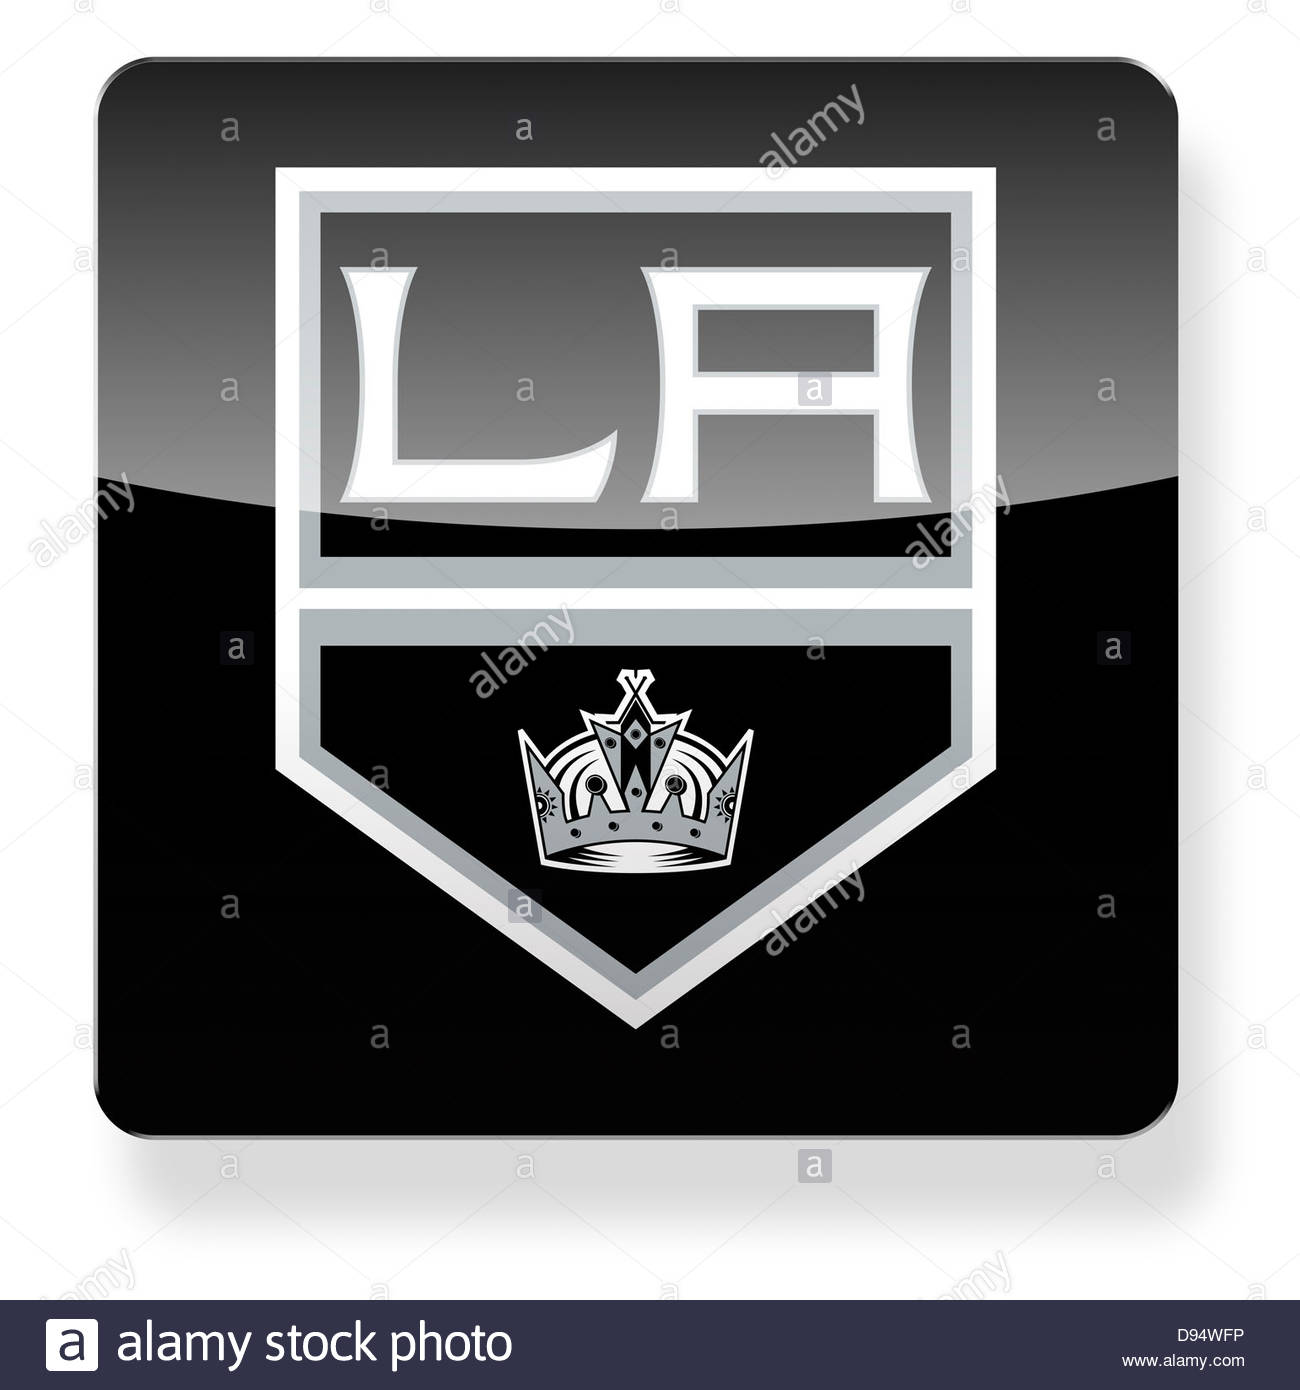 La Kings Hockey Team Logo As An App Icon Clipping Path Included Stock Photo Alamy